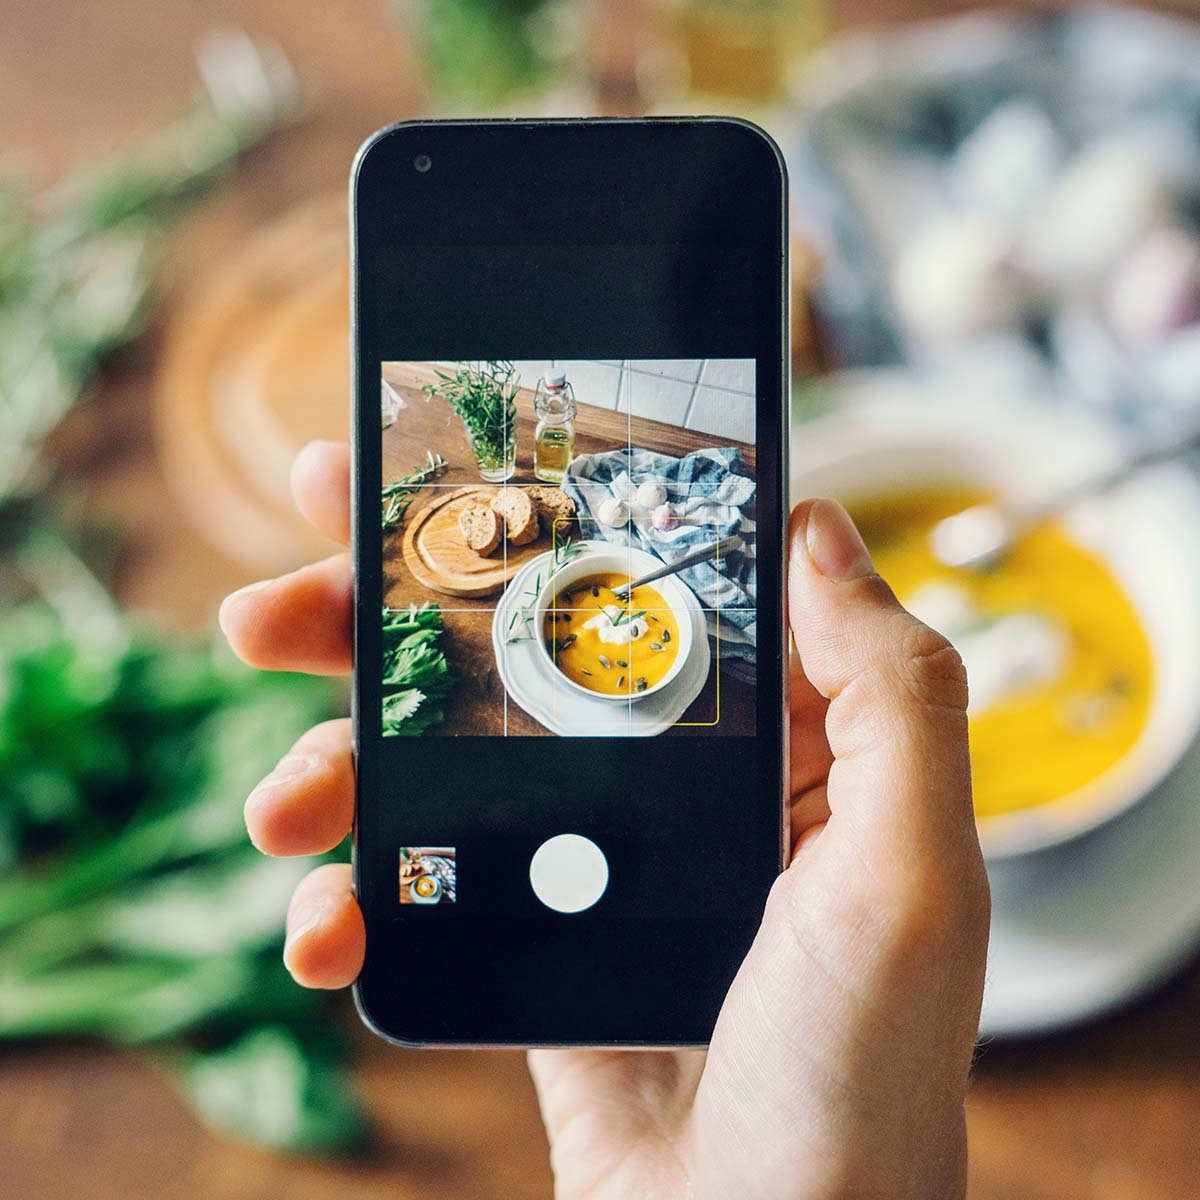 Foodie Photography 101: Capturing #DairyAmazing Food Photos